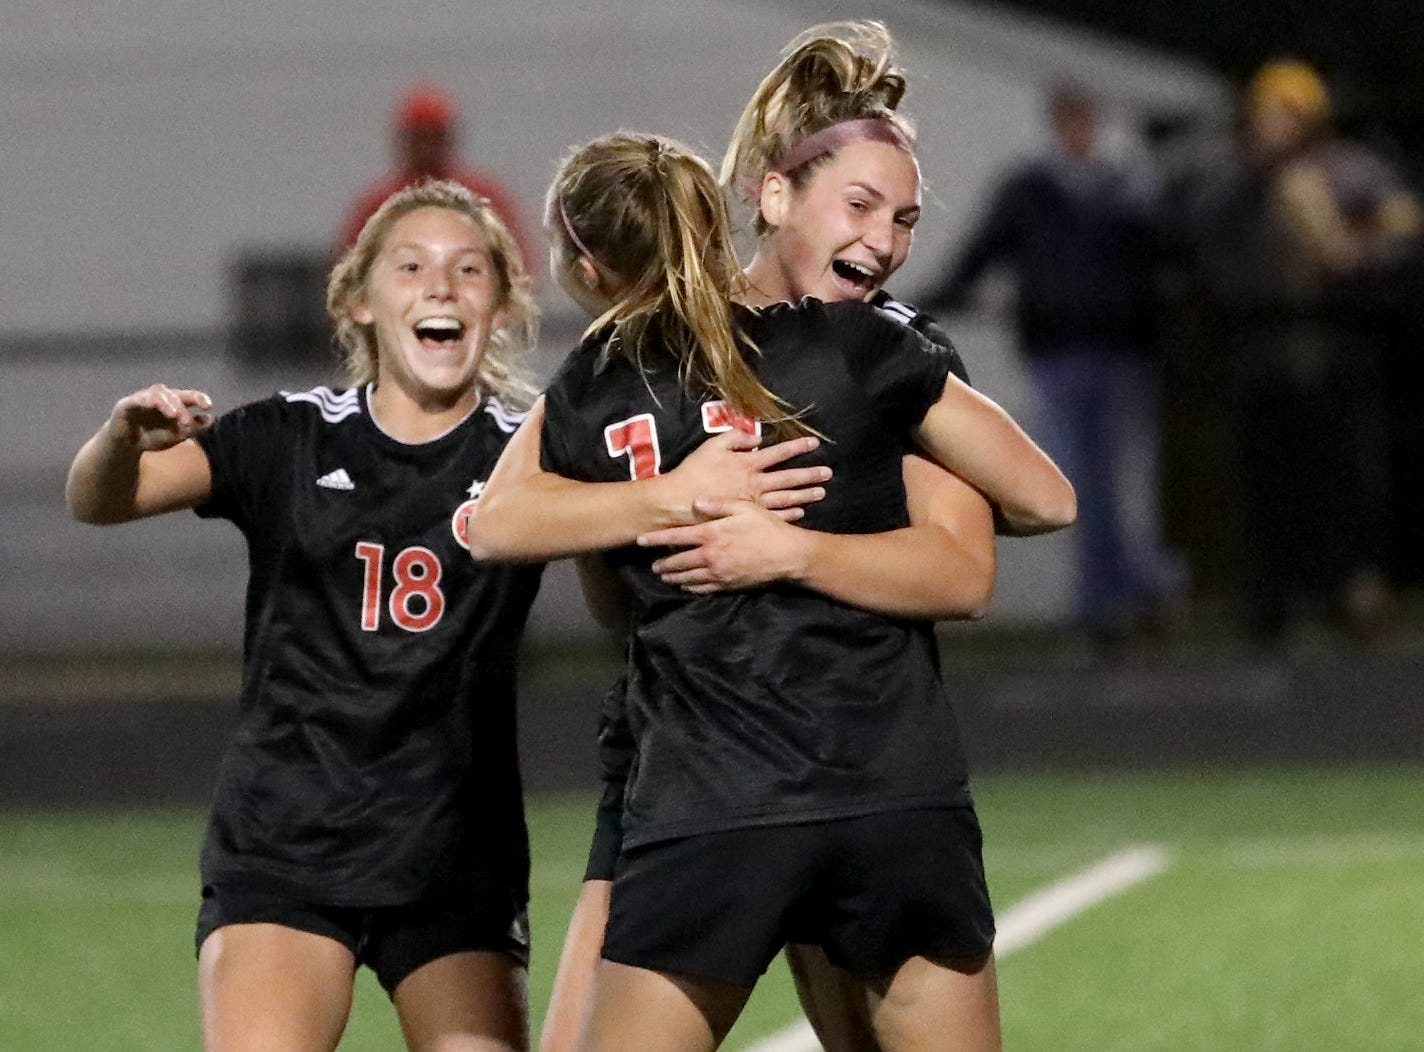 Indian Hill's Eillie Podojil (18)  and her teammates celebrate after a goal during their state semifinal against Big Walnut, Tuesday, Nov. 6, 2018.